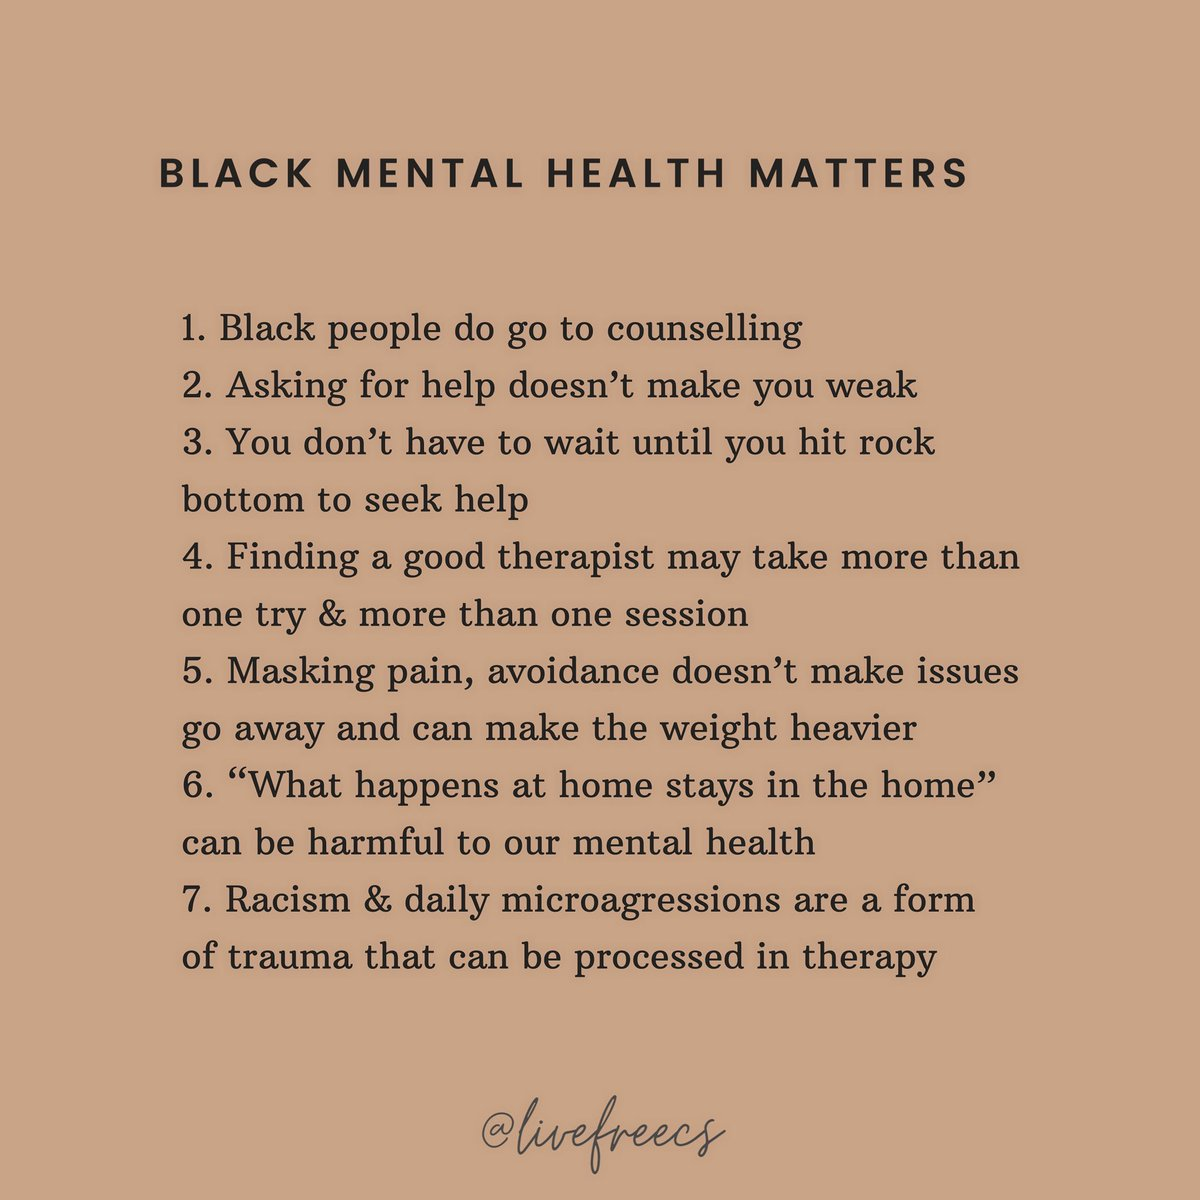 Black mental health matters. Let's normalise taking care of our mental health. You can connect with a culturally competent therapist on Trucircle. Click the link in bio to get started.  Image: @livefreecs  #therapytalk #blackmentalhealth https://t.co/8qKyvVMTnl